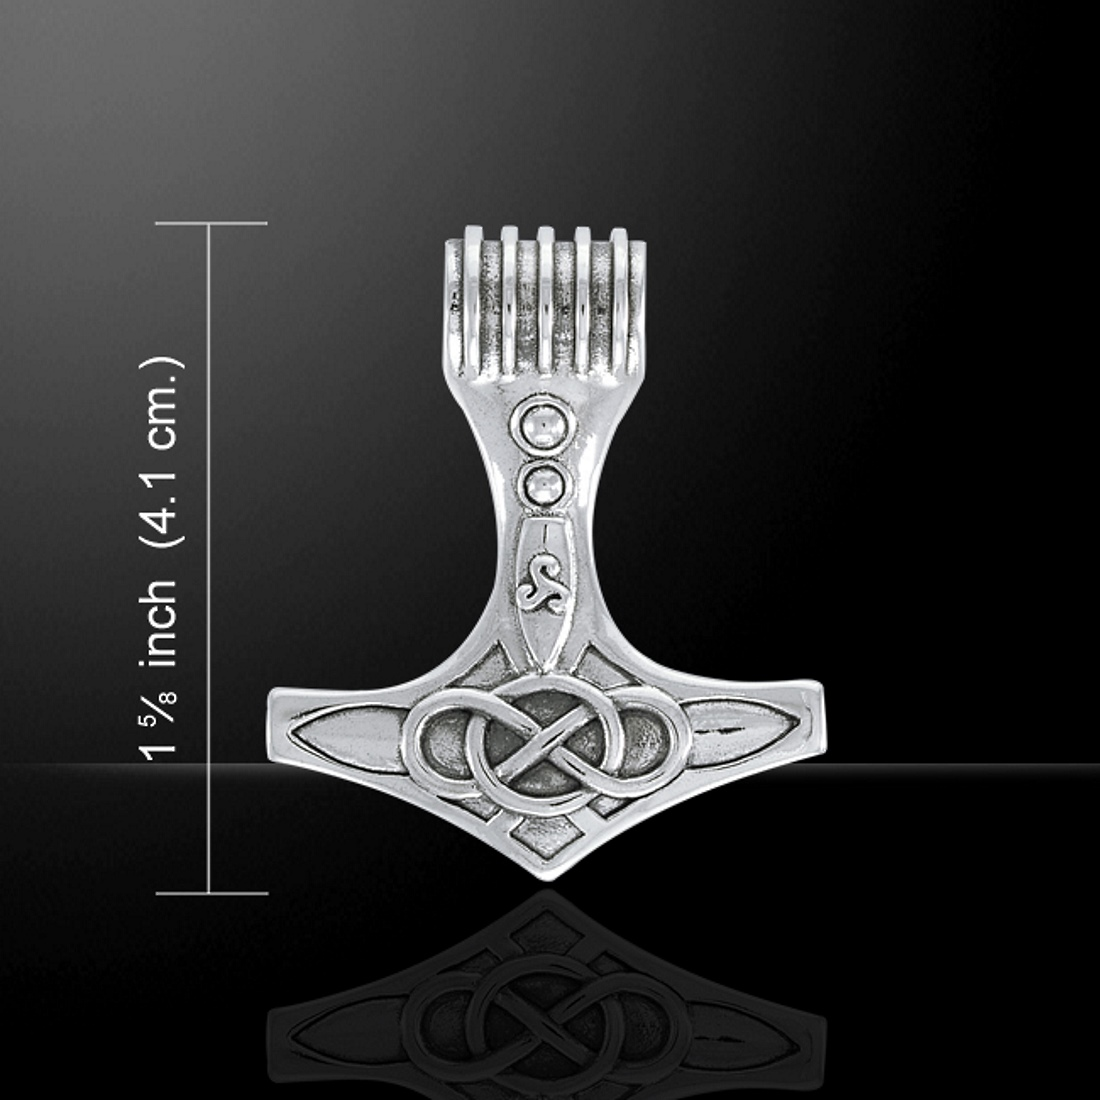 Celtic Thors Hammer Mjolnir Pendant by Peter Stone, Sterling Silver